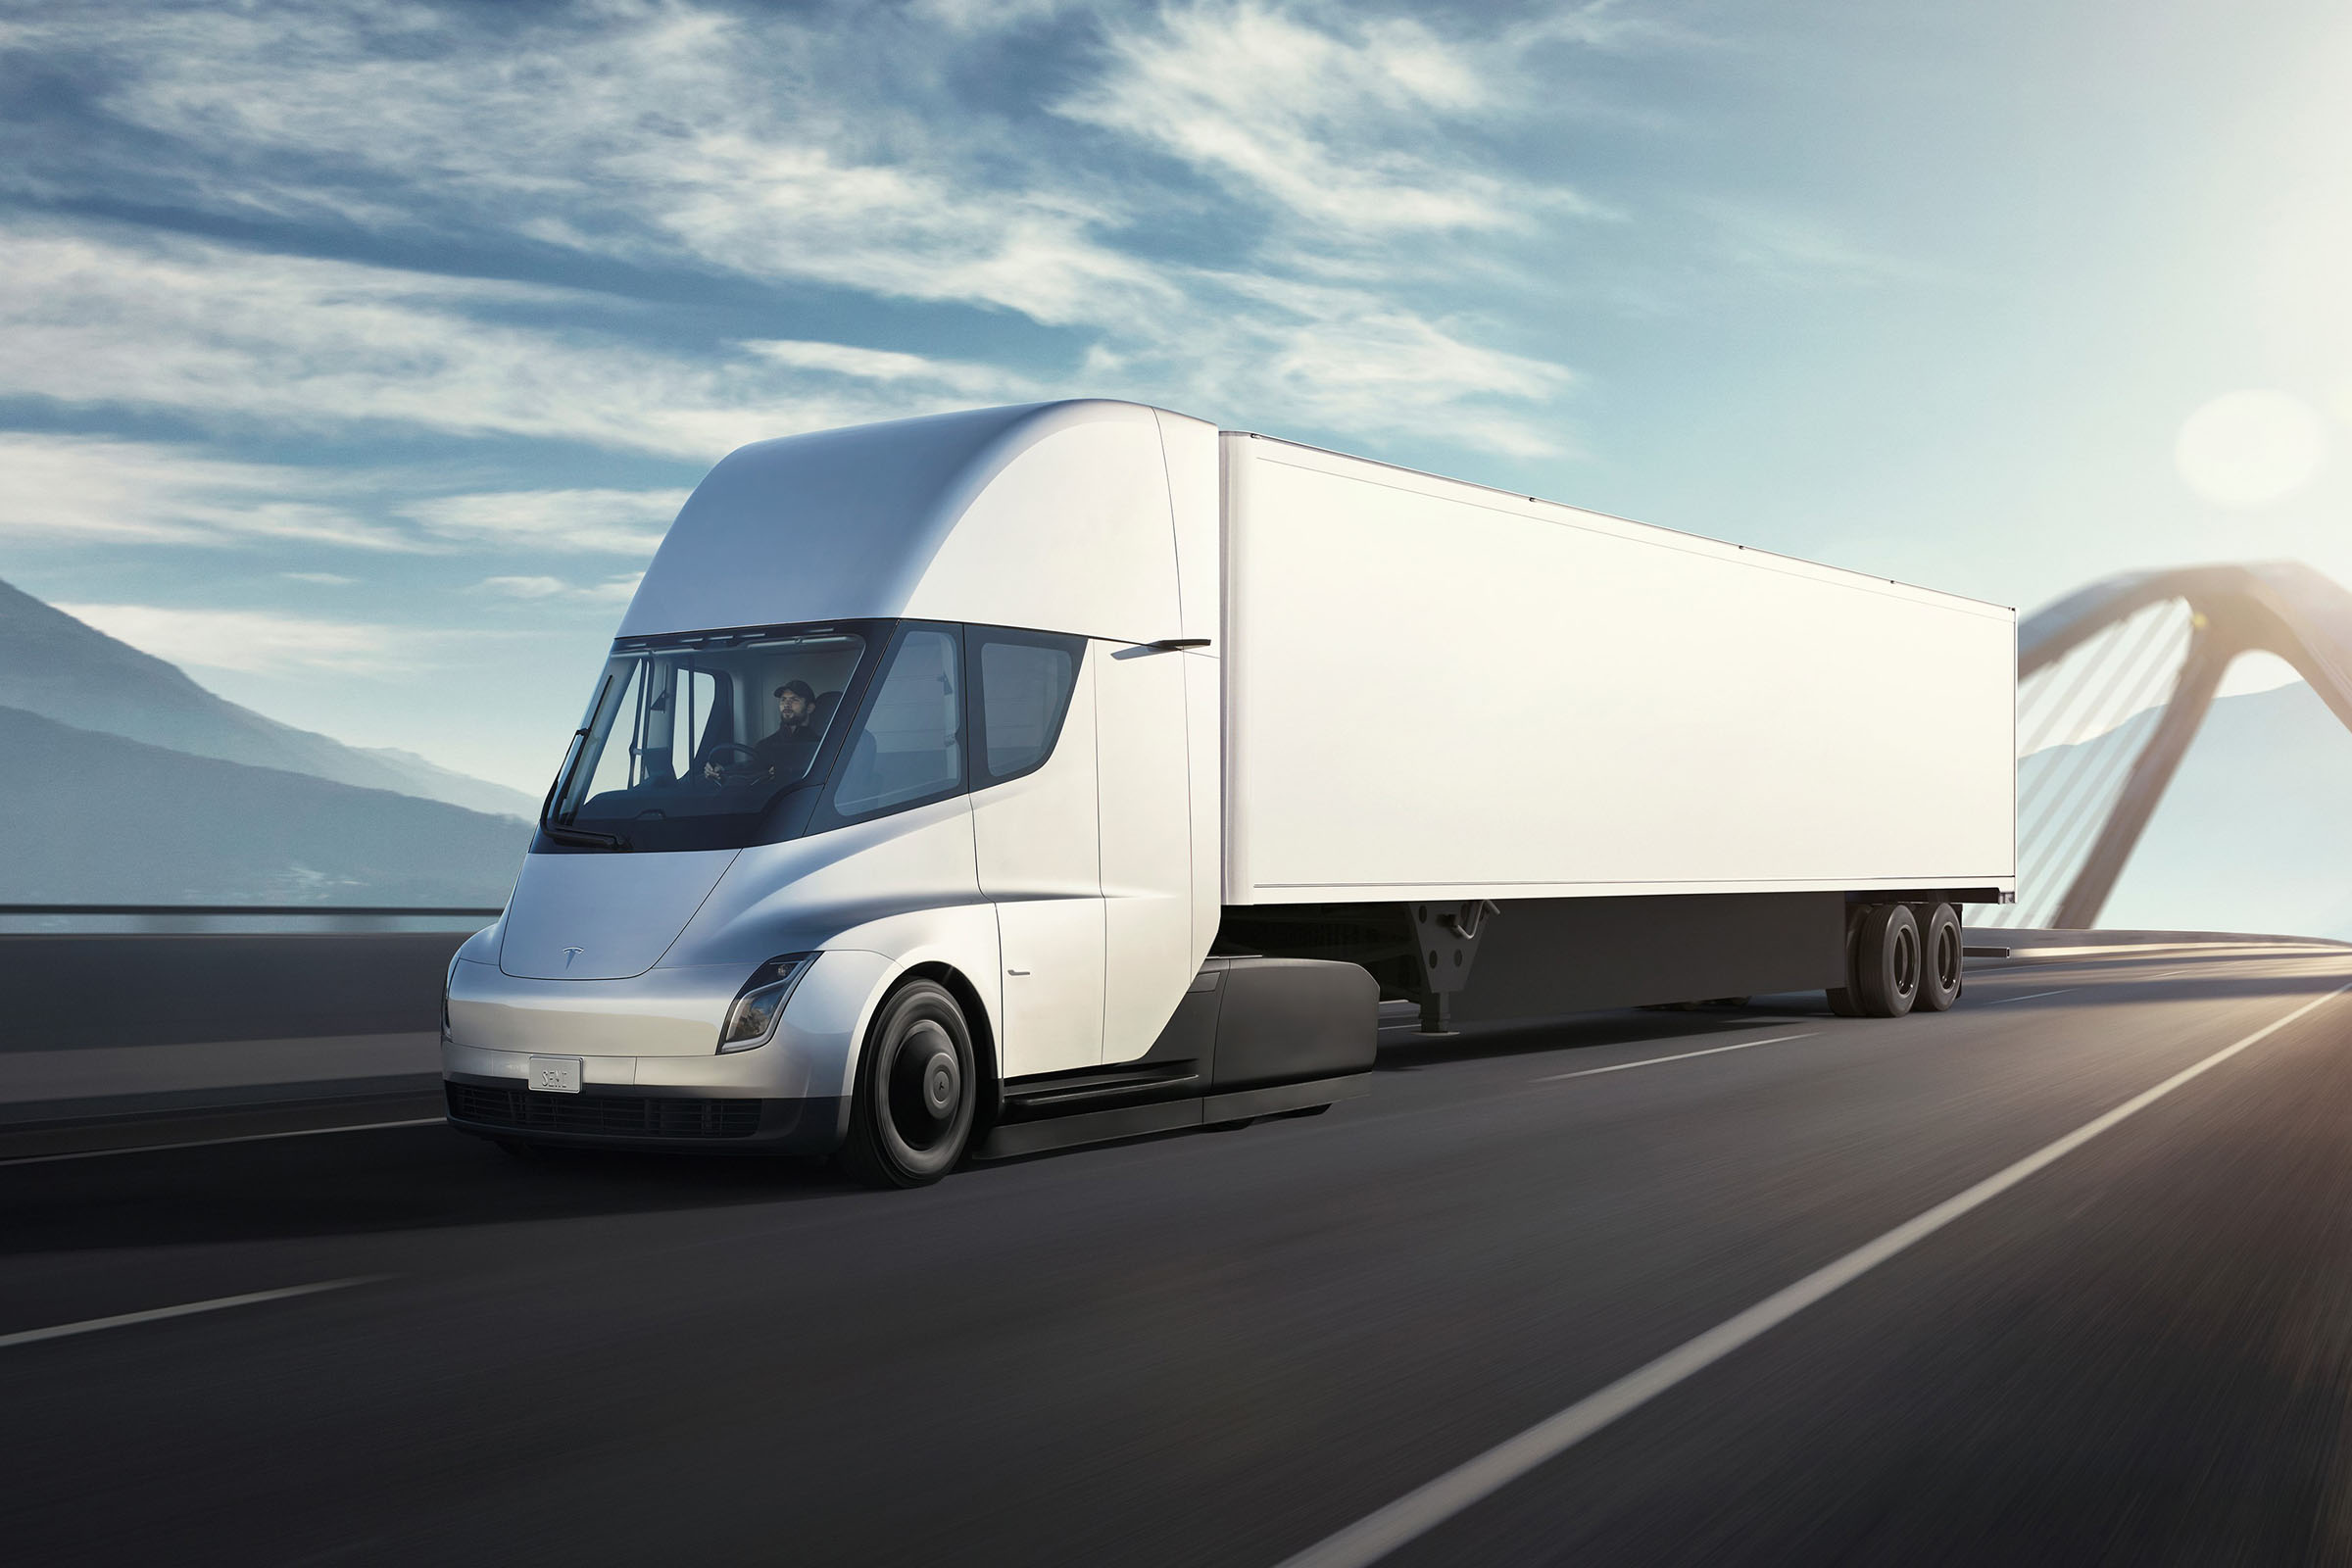 The world's second richest man right now believes that emerging battery tech should enable Tesla's first long-haul truck to run as long on a single charge as the recently shown fuel-cell-based Mercedes-Benz GenH2.